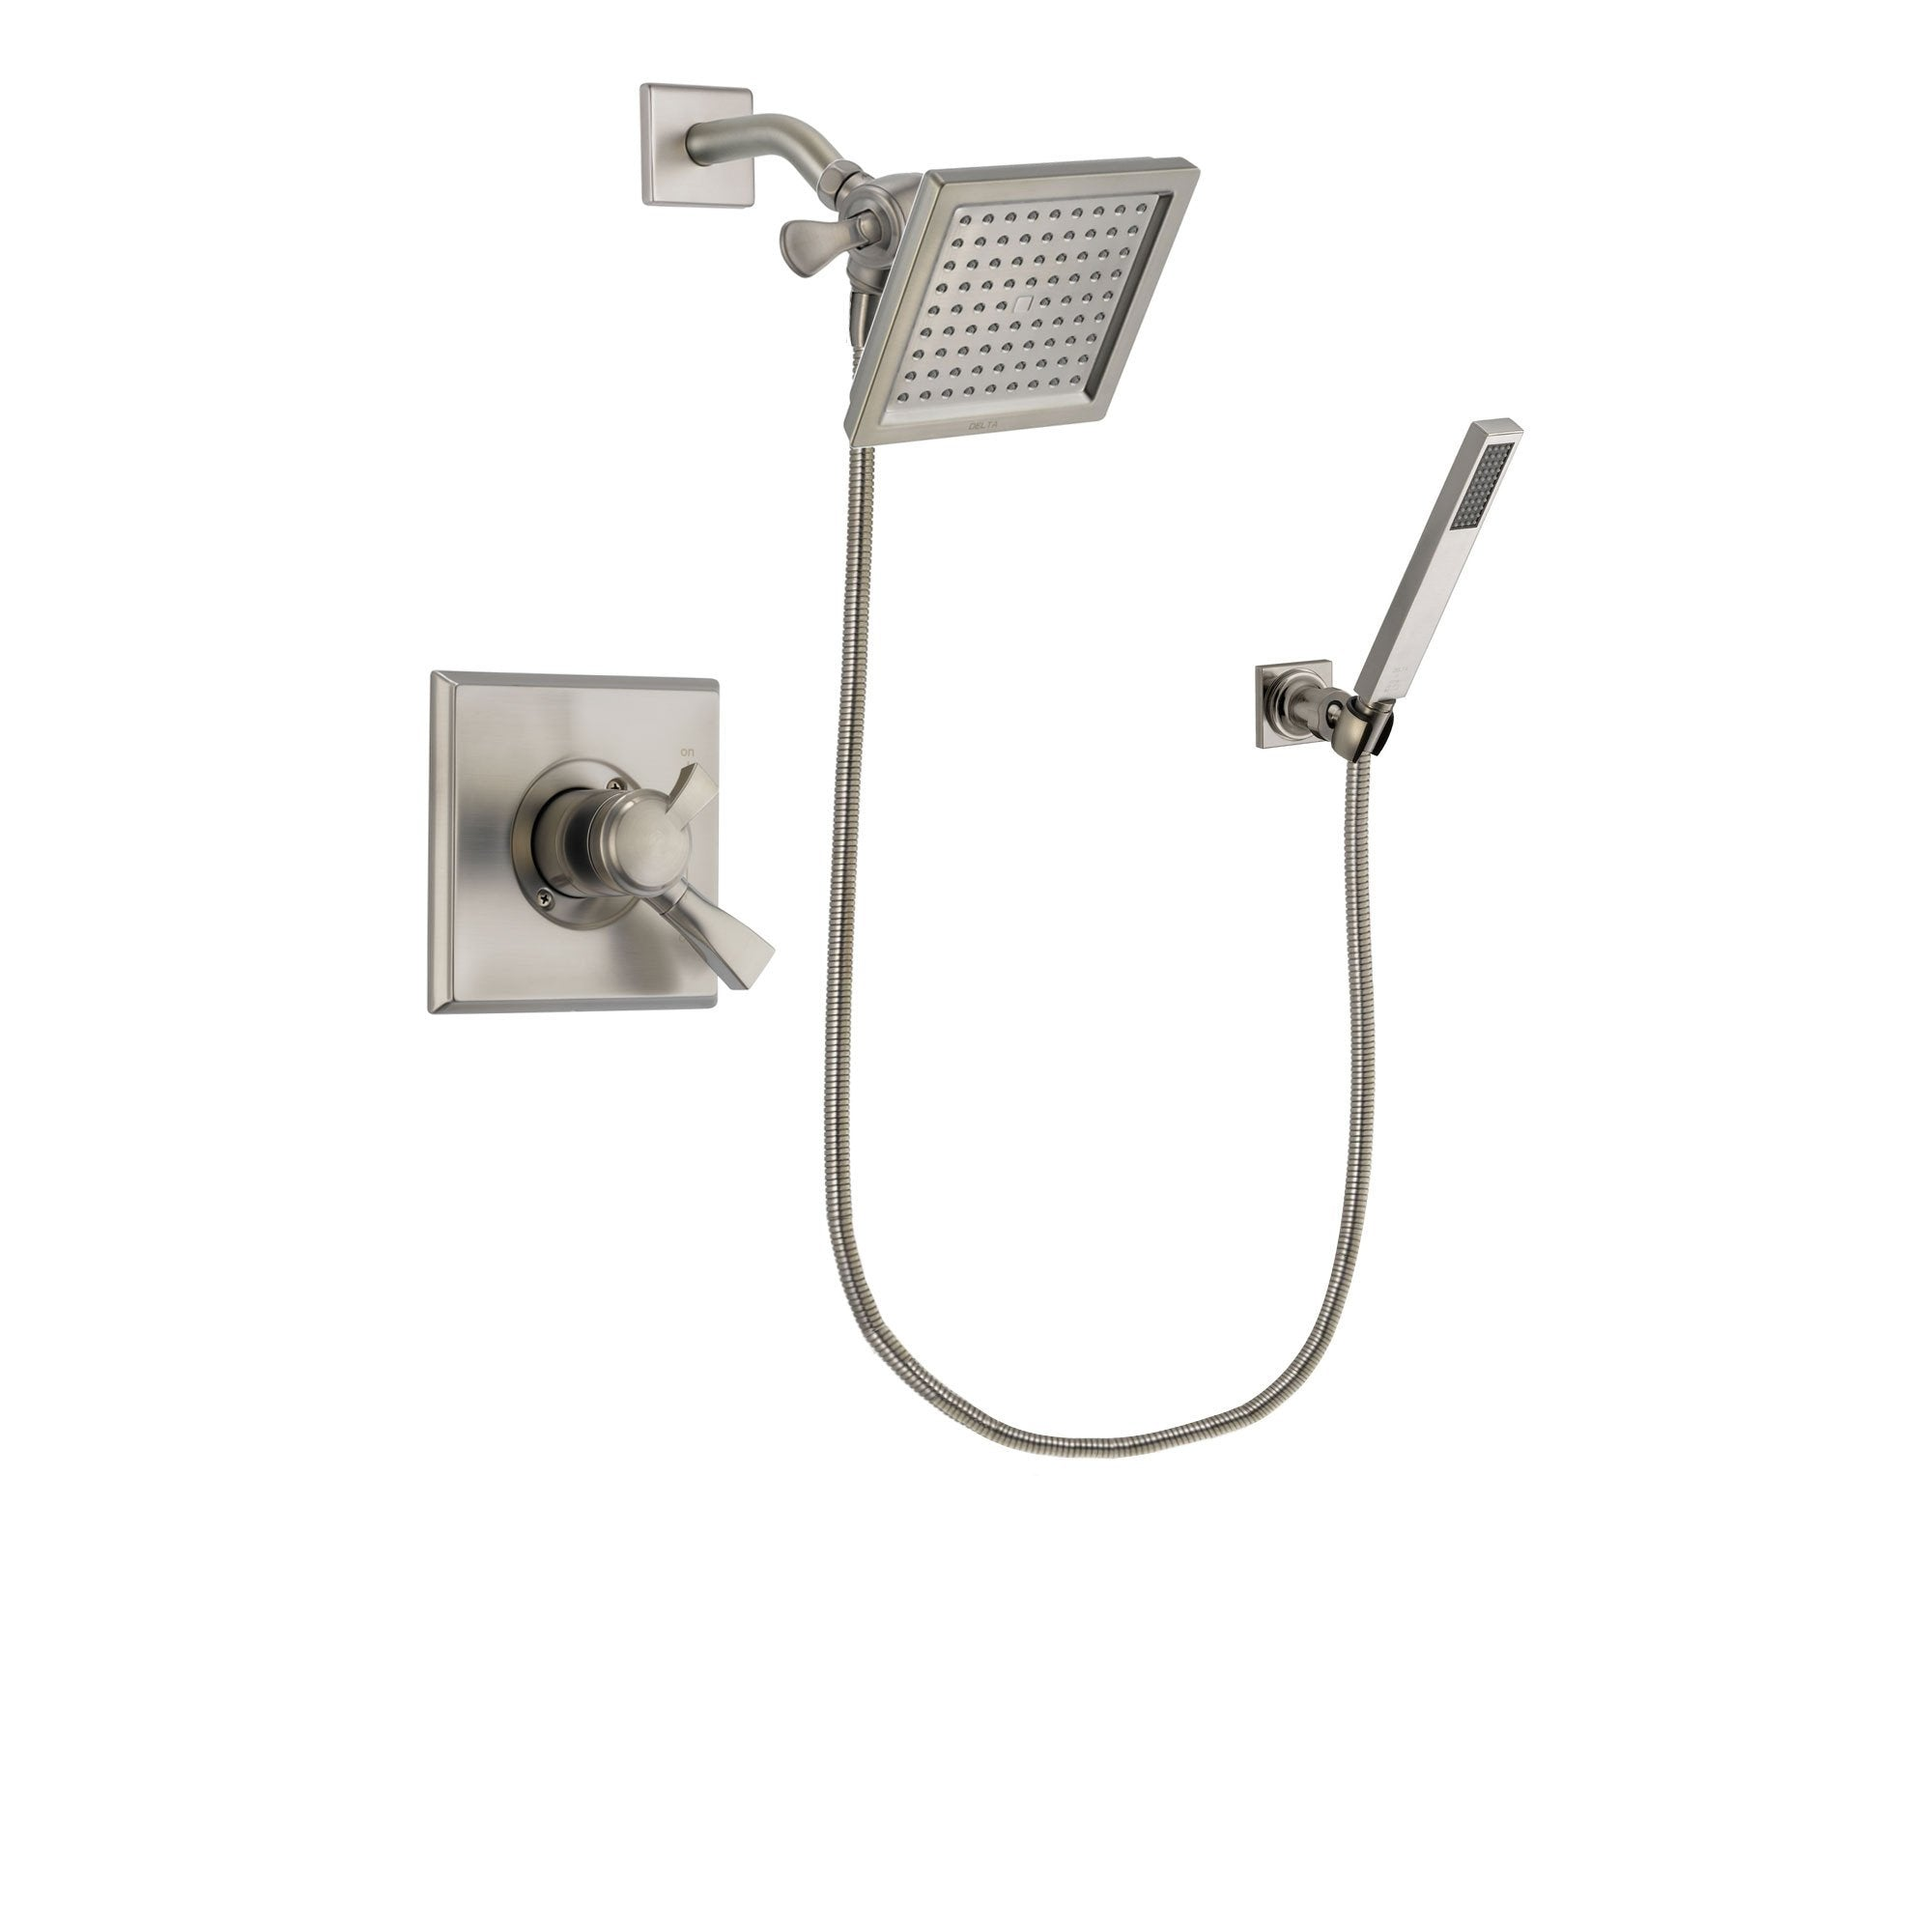 Delta Dryden Stainless Steel Finish Shower Faucet System w/ Hand Spray DSP2196V